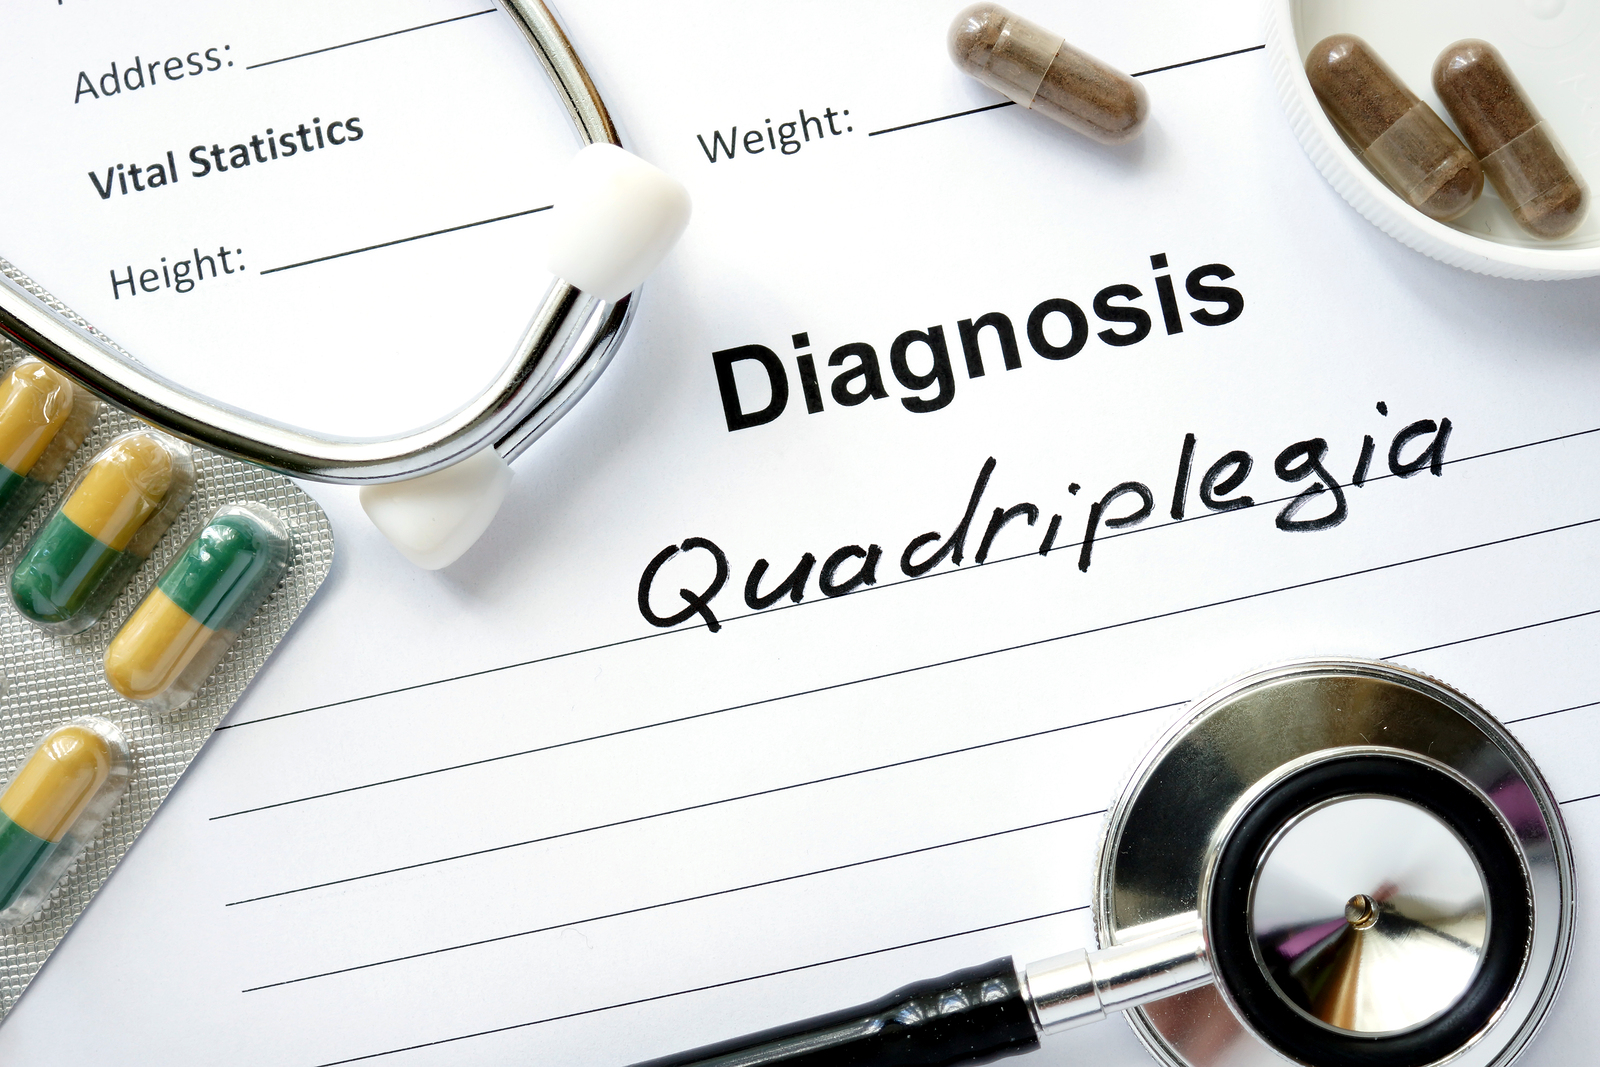 Quadriplegia and Marijuana Information: Treat Quadriplegia With Cannabis